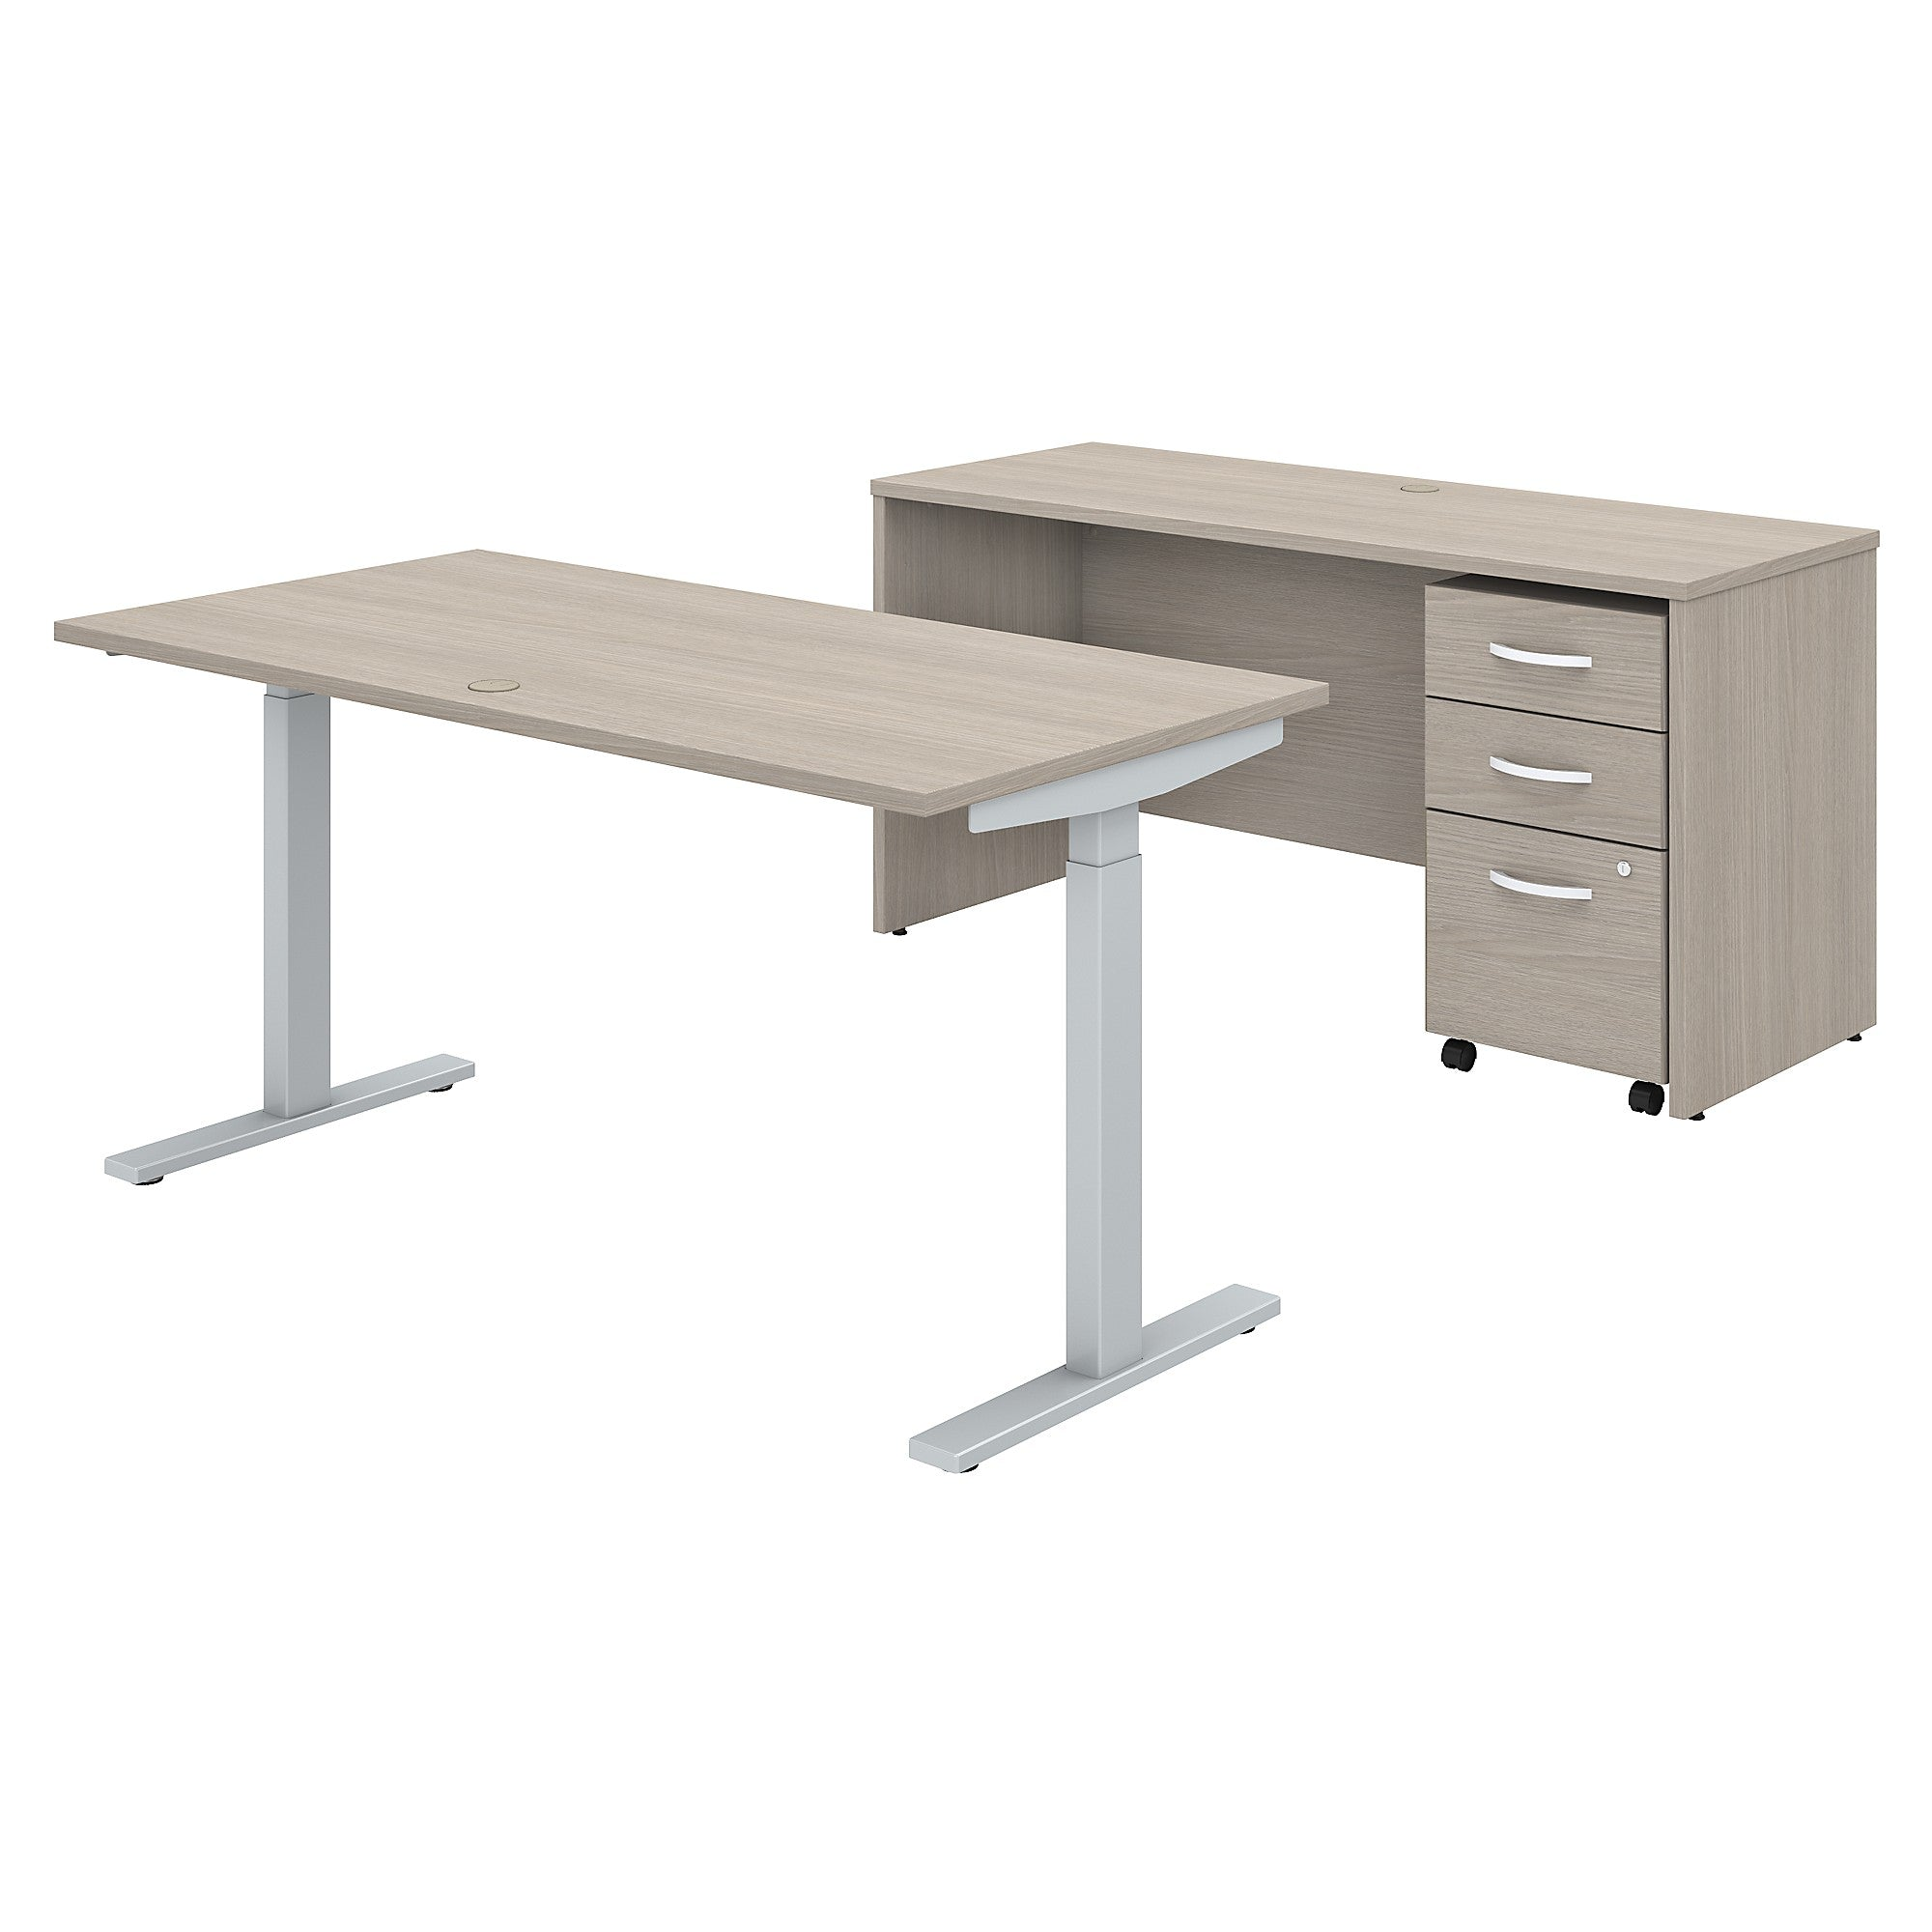 Height Adjustable Standing Desk Credenza & Mobile File Cabinet